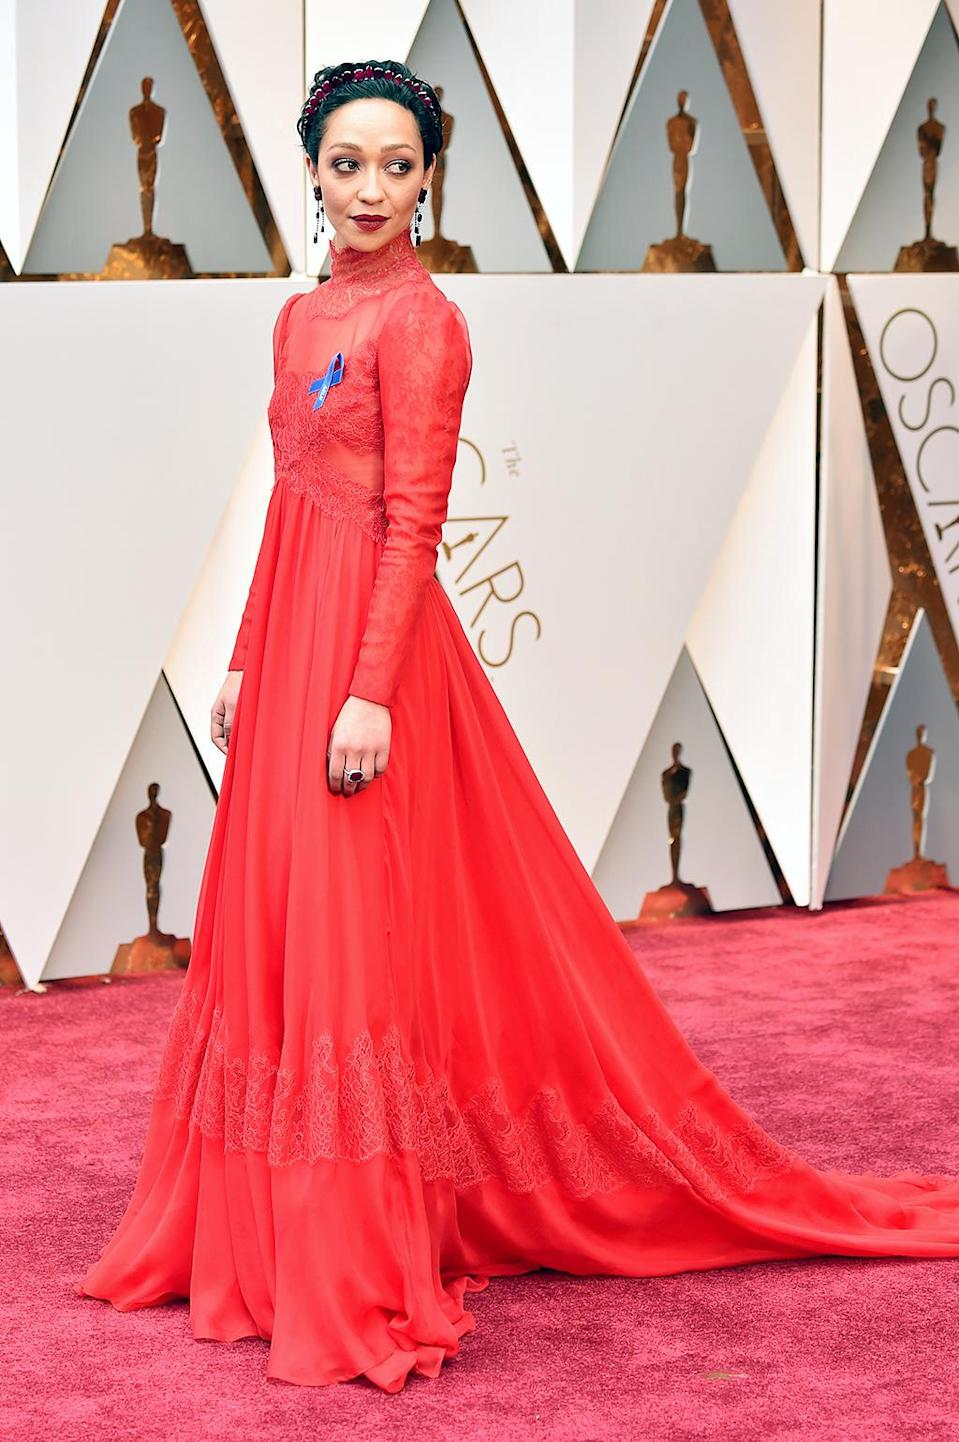 """<p>Call her the Lady in Red Valentino. The <em>Loving</em> star and Best Actress nominee dazzled on the carpet, accessorizing her scarlet gown with a blue ACLU ribbon.<br> (Photo by Frazer Harrison/Getty Images)<br><br><a rel=""""nofollow"""" href=""""https://www.yahoo.com/style/oscars-2017-vote-for-the-best-and-worst-dressed-225105125.html"""" data-ylk=""""slk:Go here to vote for best and worst dressed.;outcm:mb_qualified_link;_E:mb_qualified_link;ct:story;"""" class=""""link rapid-noclick-resp yahoo-link"""">Go here to vote for best and worst dressed.</a> </p>"""